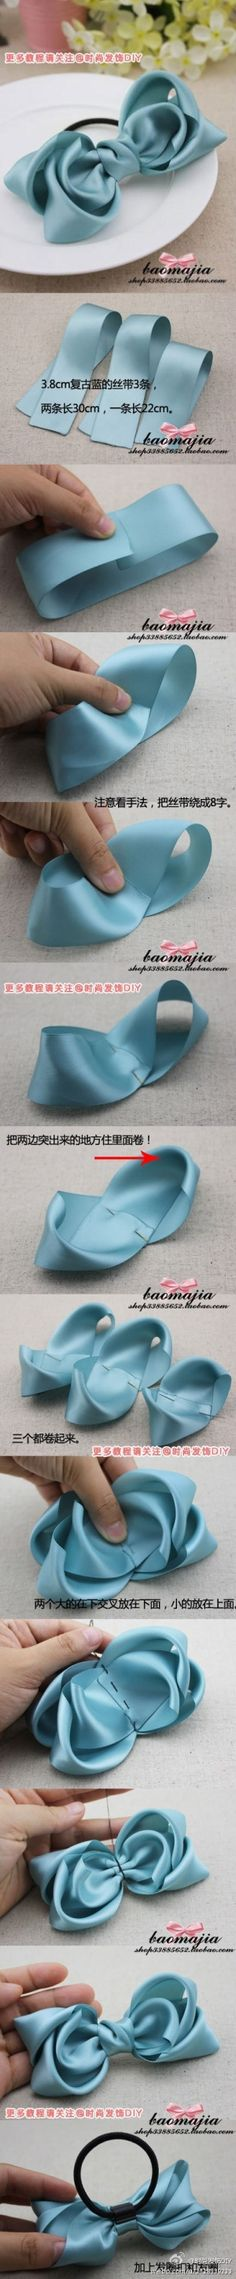 DIY bows - versatile DIY craft idea - visual step by step photos - in Asian writing but can be figured out because the excellent visual photos are enough. Cute for hair bows, on gift wrap, in floral crafts and for other crafts and gifts. Sewing Crafts, Sewing Projects, Diy Projects, Do It Yourself Fashion, Ribbon Bows, Ribbons, Diy Ribbon, Ribbon Flower, Fabric Ribbon